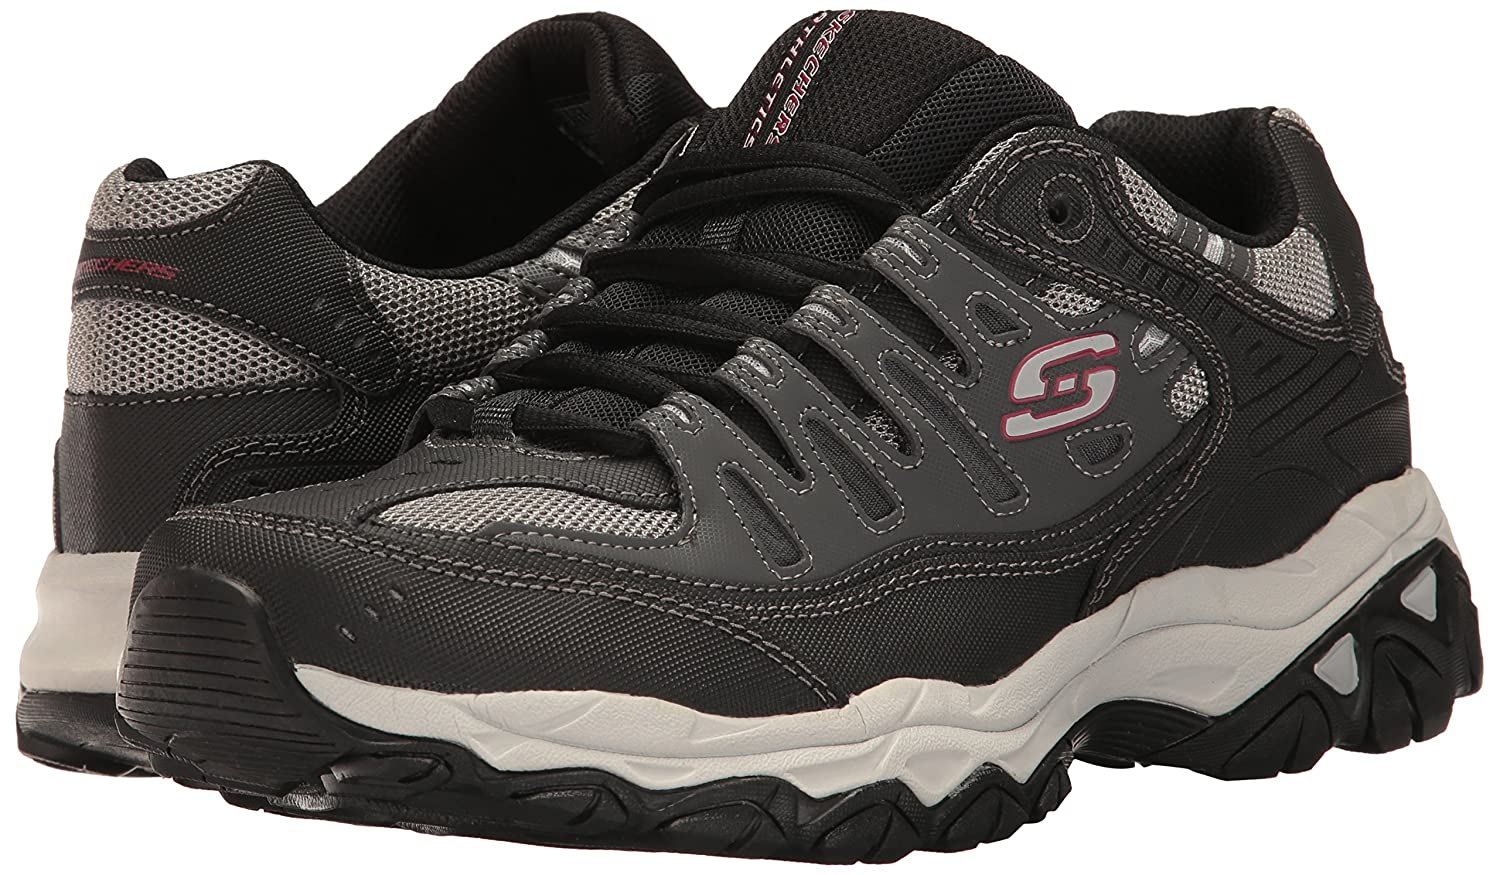 Skechers-Afterburn-Memory-Foam-M-Fit-Men-039-s-Sport-After-Burn-Sneakers-Shoes thumbnail 47